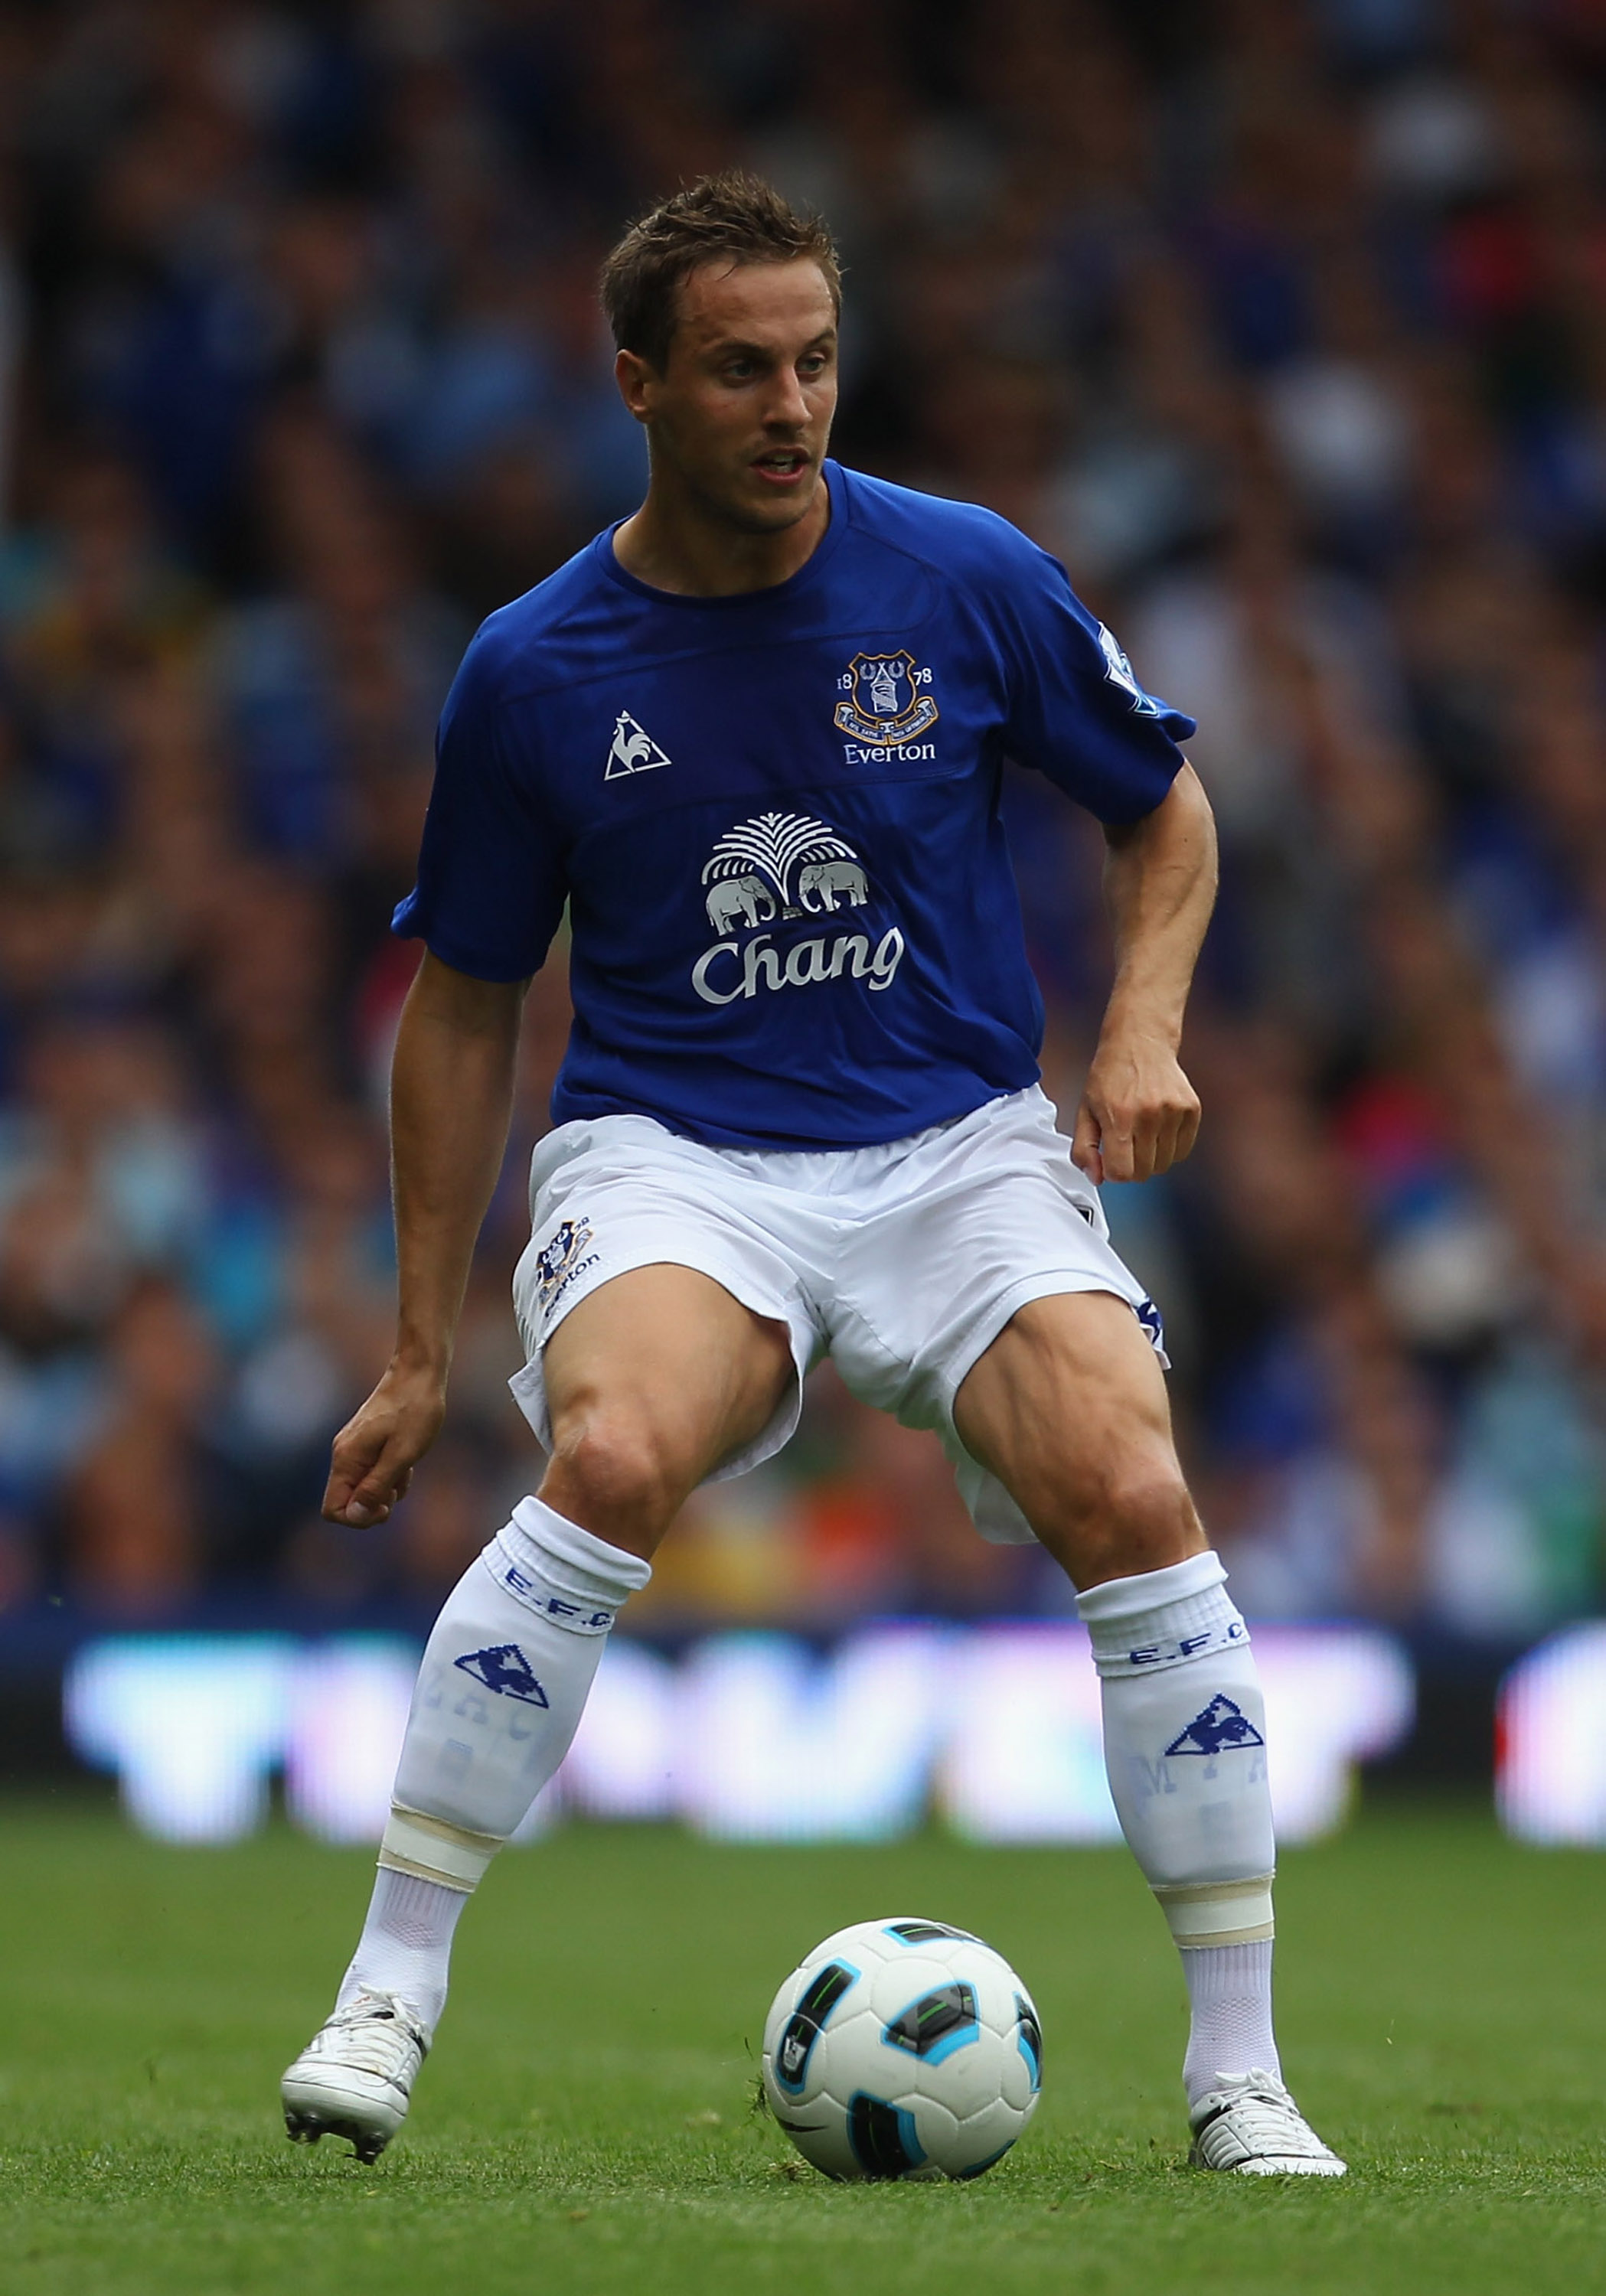 LIVERPOOL, ENGLAND - AUGUST 21:  Phil Jagielka of Everton during the Barclays Premier League match between Everton and Wolverhampton Wanderers at Goodison Park on August 21, 2010 in Liverpool, England.  (Photo by Alex Livesey/Getty Images)